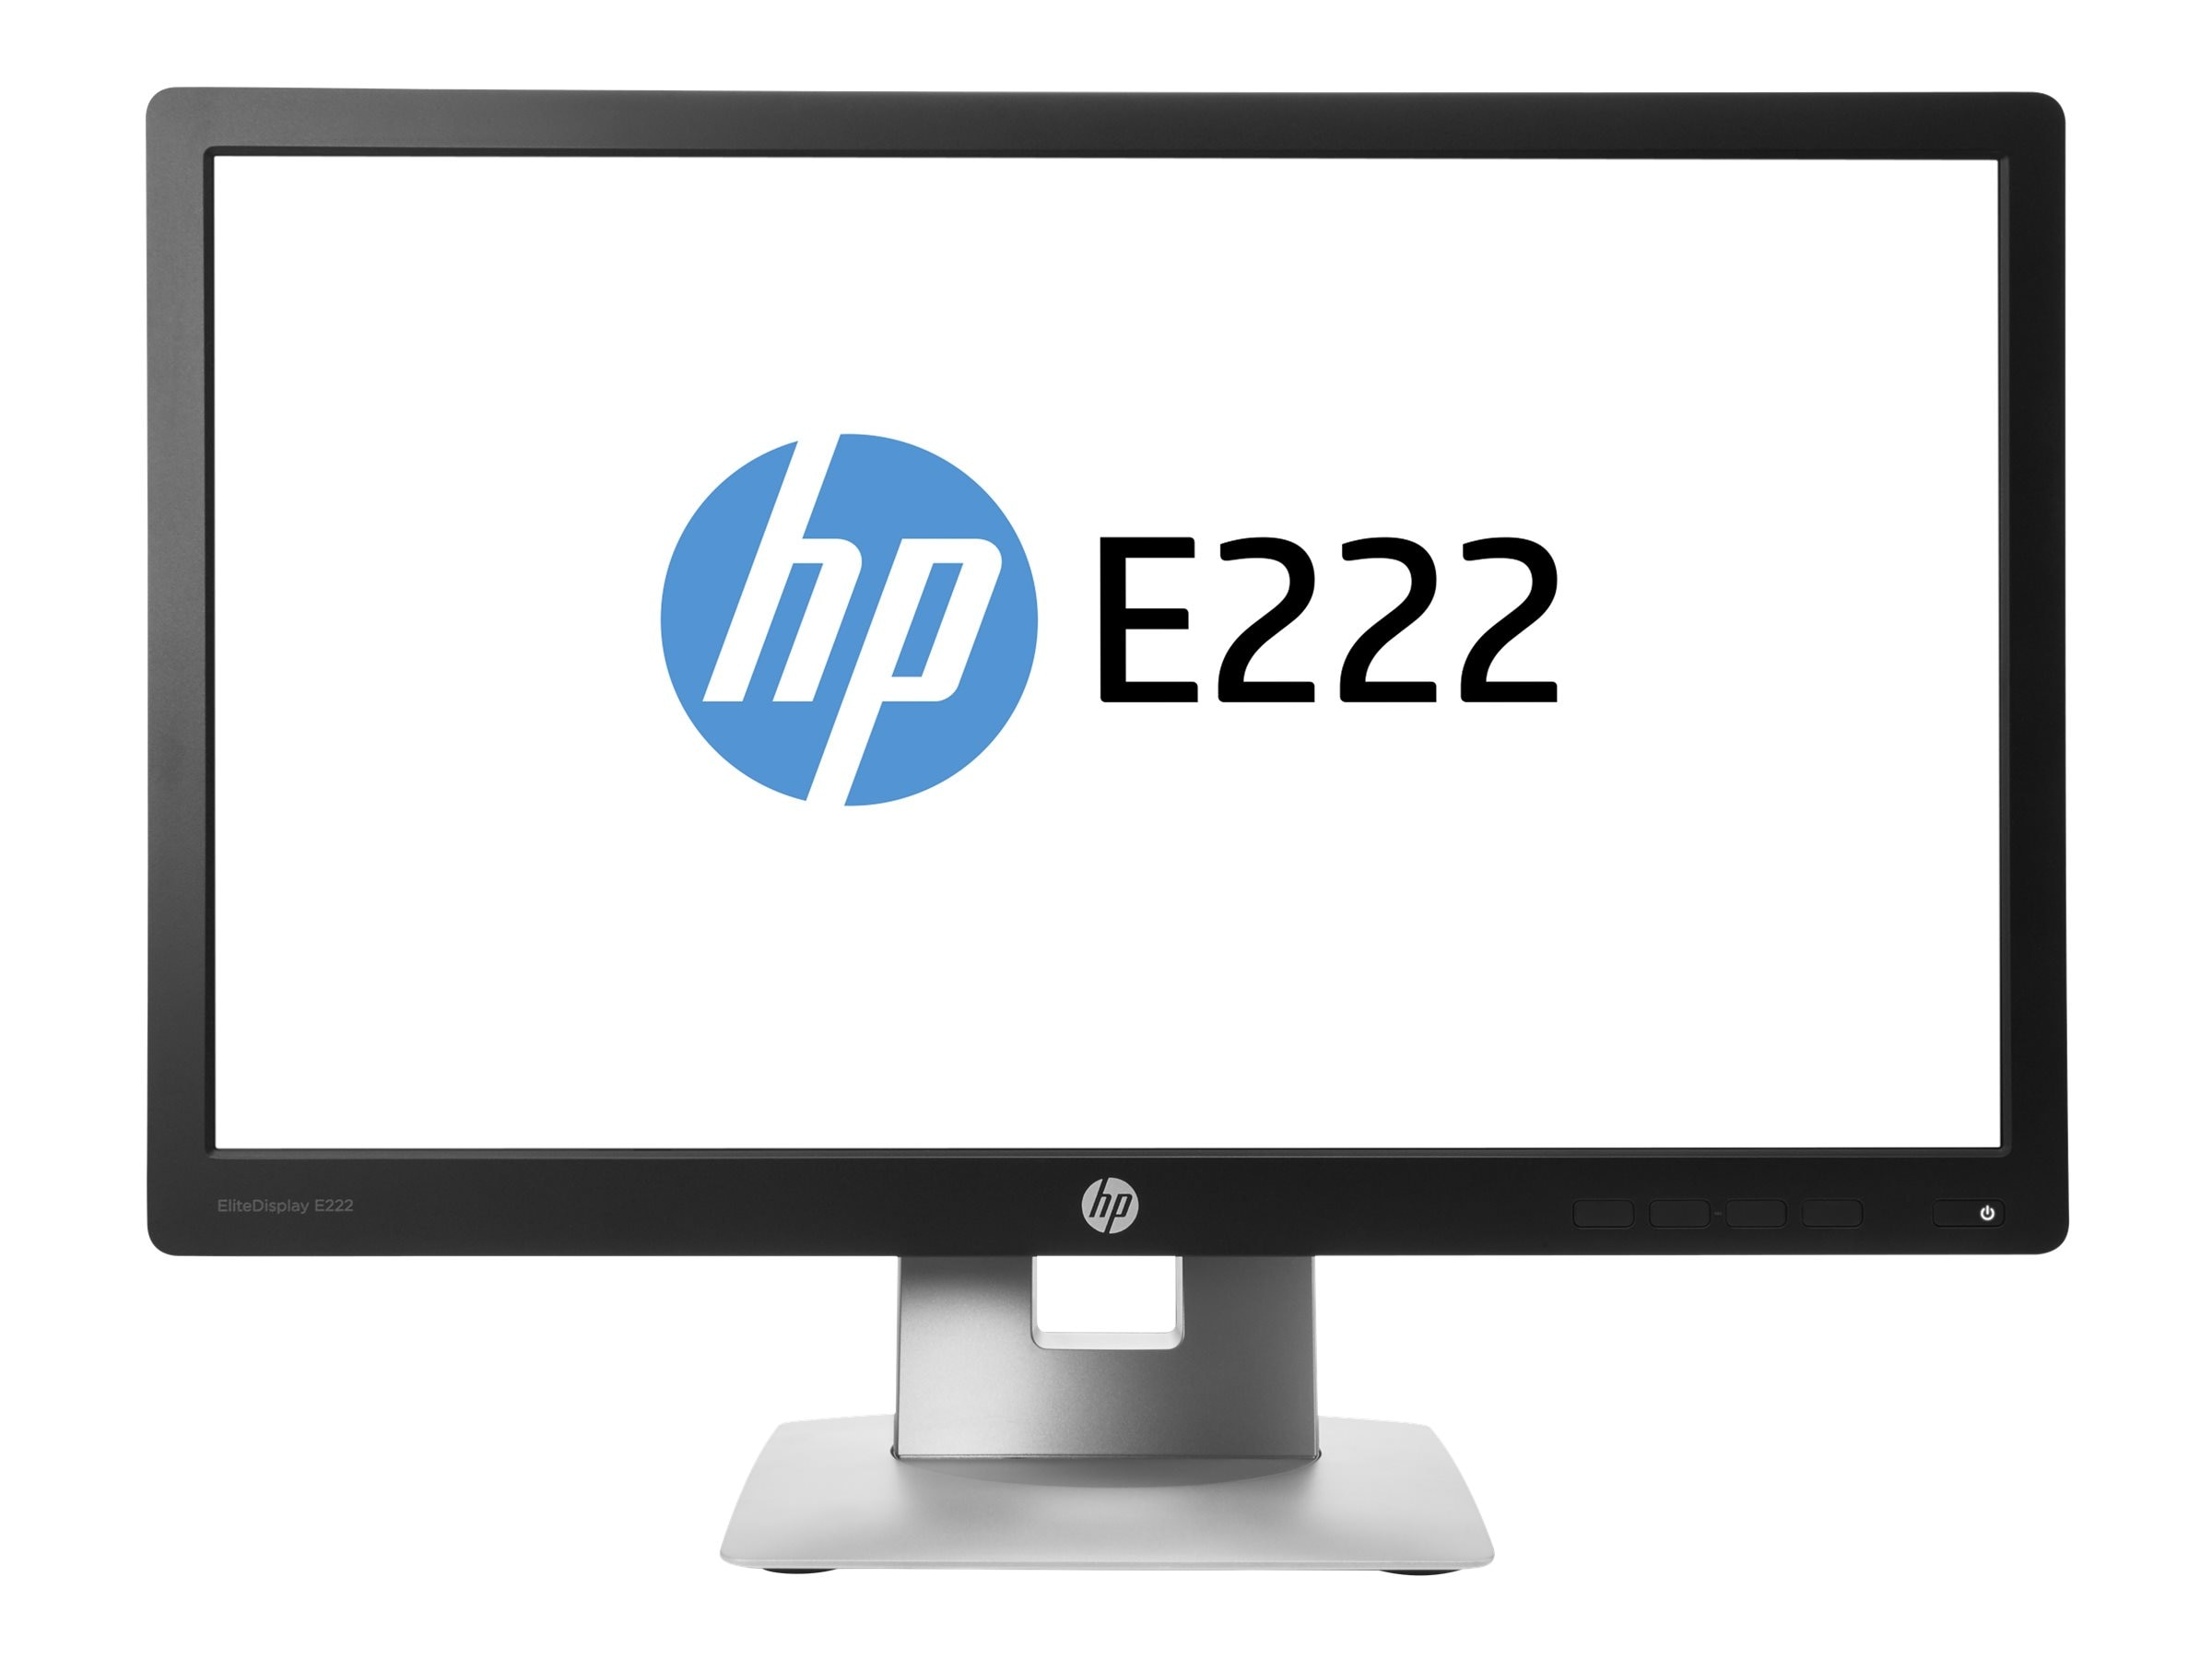 HP 21.5 E222 Full HD LED-LCD Monitor, Black